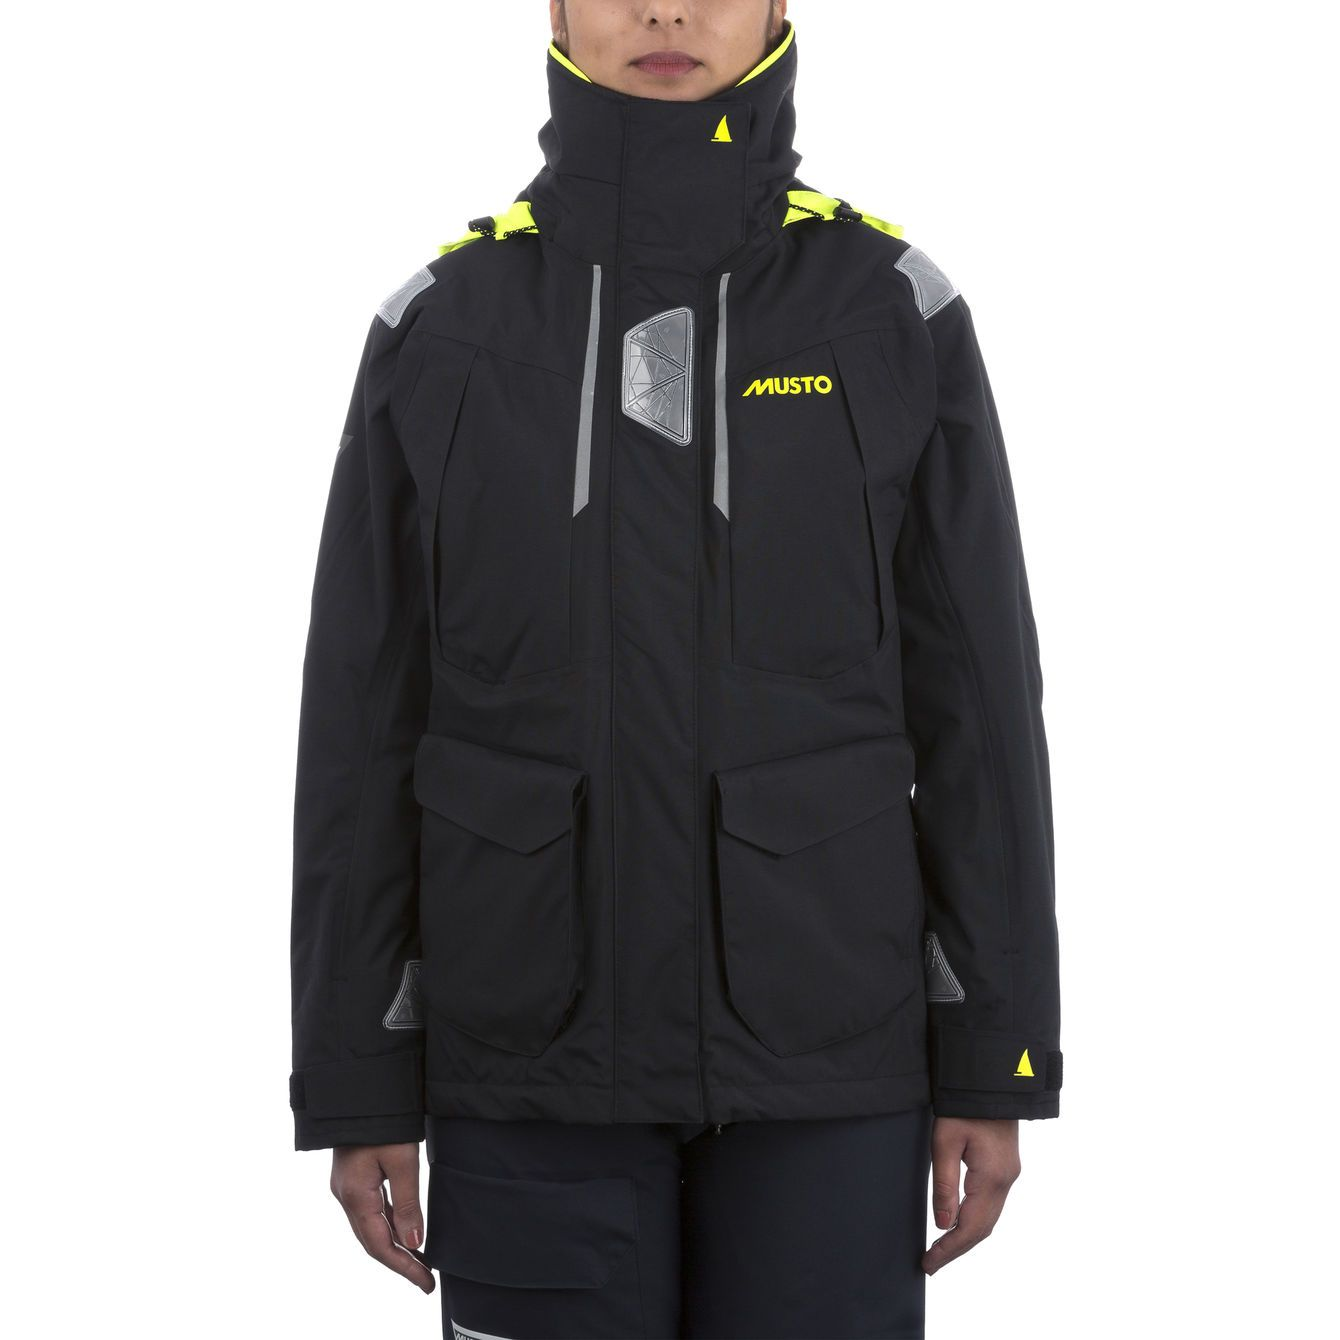 MUSTO - BR2 OFFSHORE JACKET FW